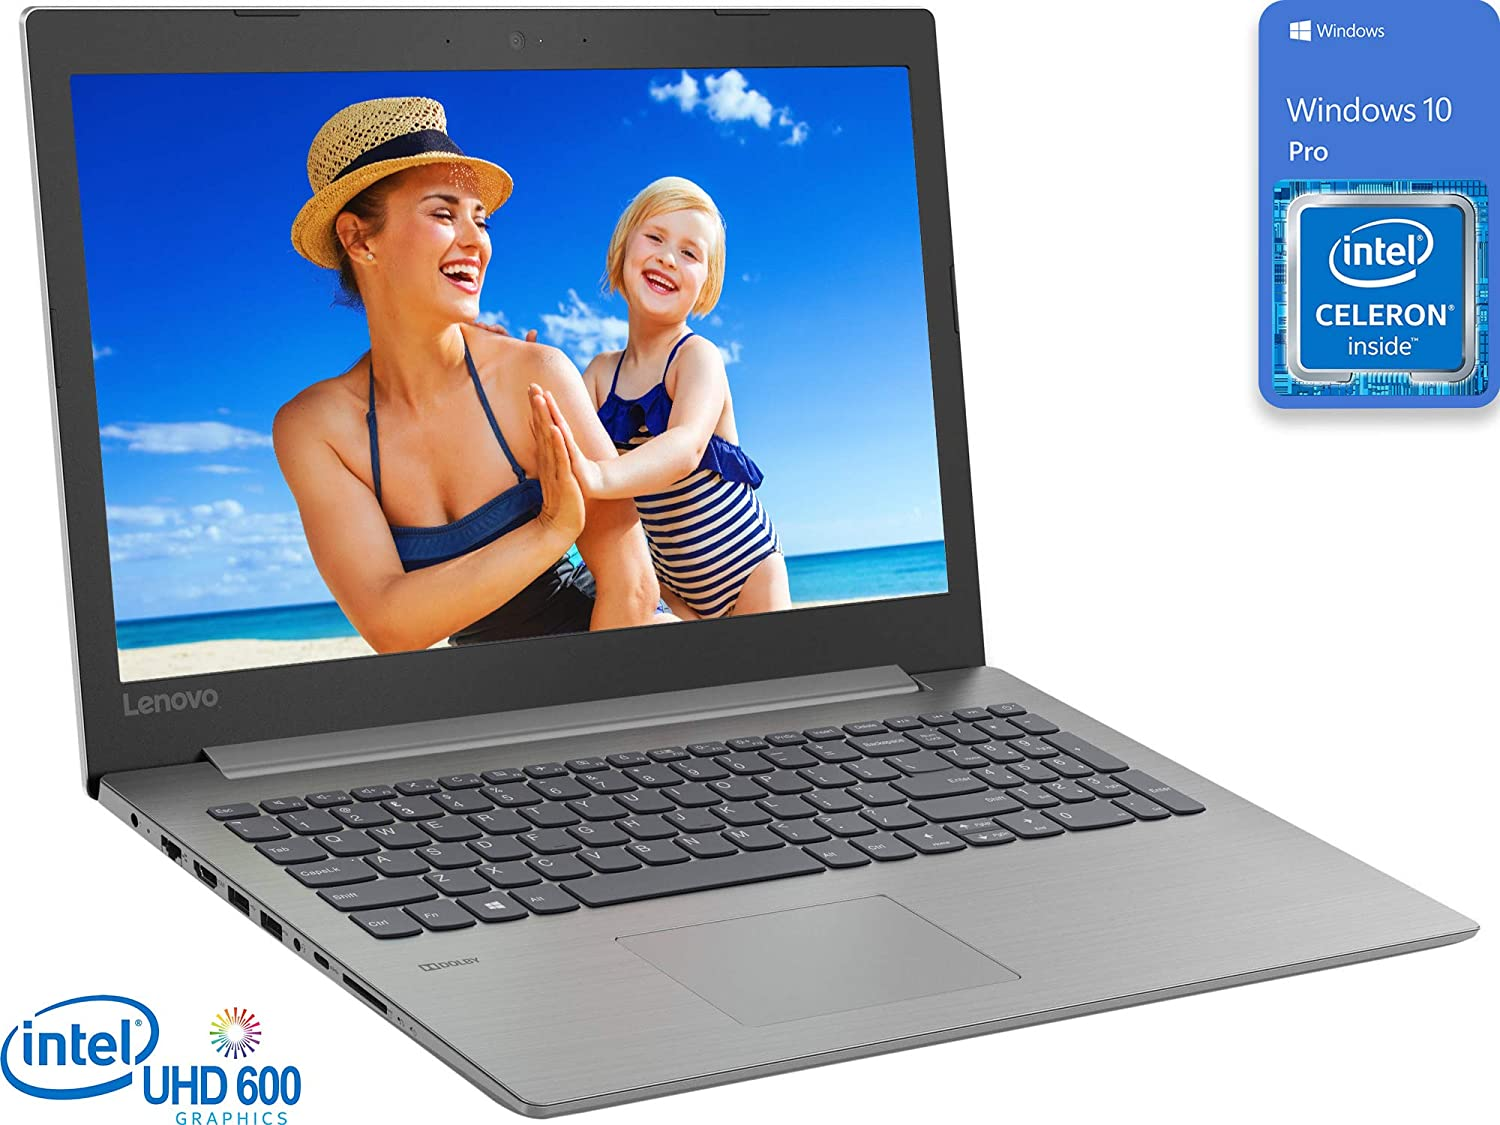 "Lenovo IdeaPad 330 Laptop, 15.6"" HD Display, Intel Celeron N4000 Upto 2.6Ghz, 8GB RAM, 1TB SSD, UK Keyboard, DVDRW, HDMI, Card Reader, Wi-Fi, Bluetooth, Windows 10 Pro"